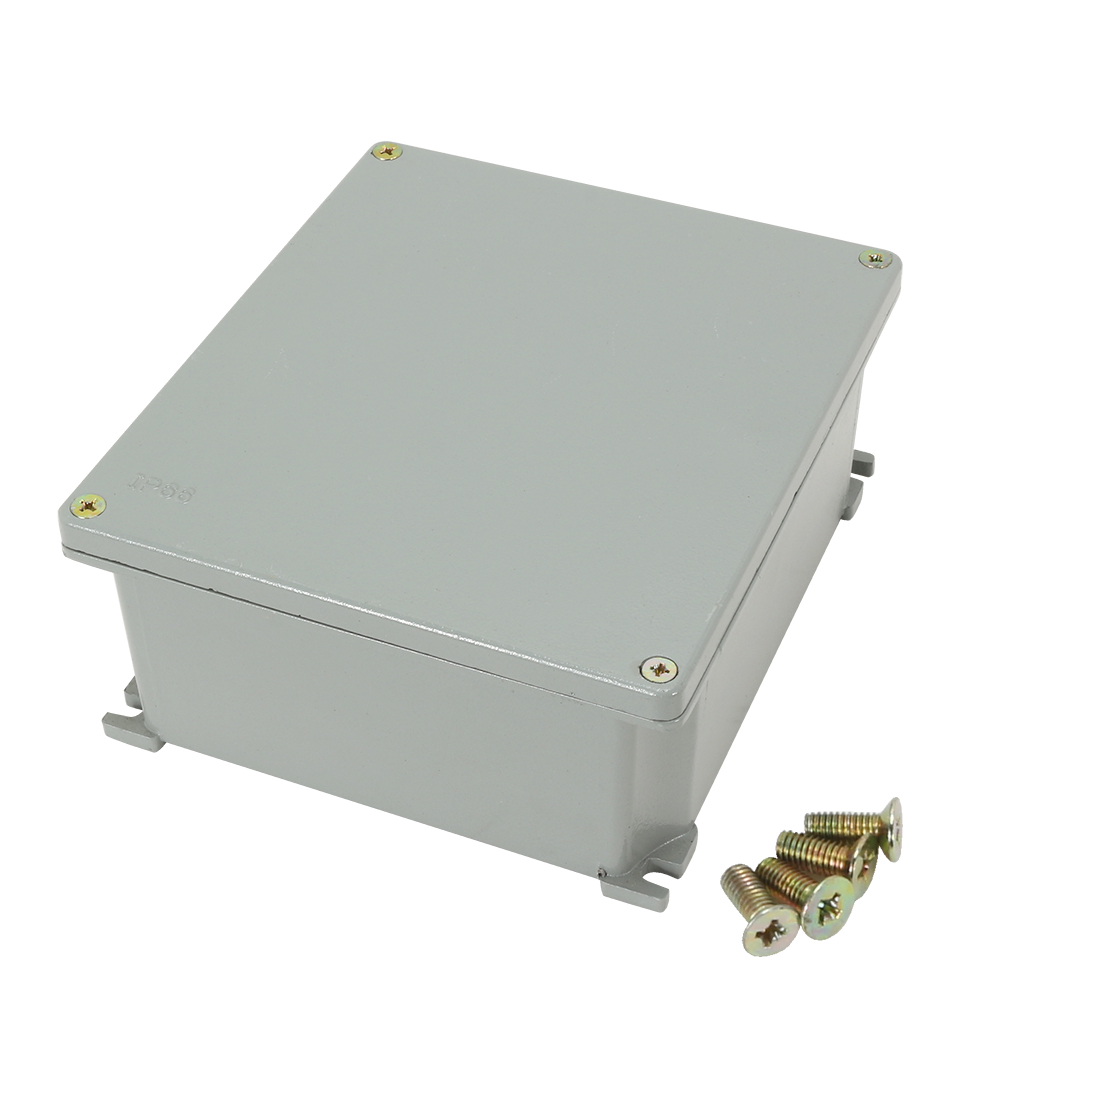 "7.5""x6.5""x3.2""(190mmx165mmx80mm) Aluminum Junction Box Universal Electric Project Enclosure"